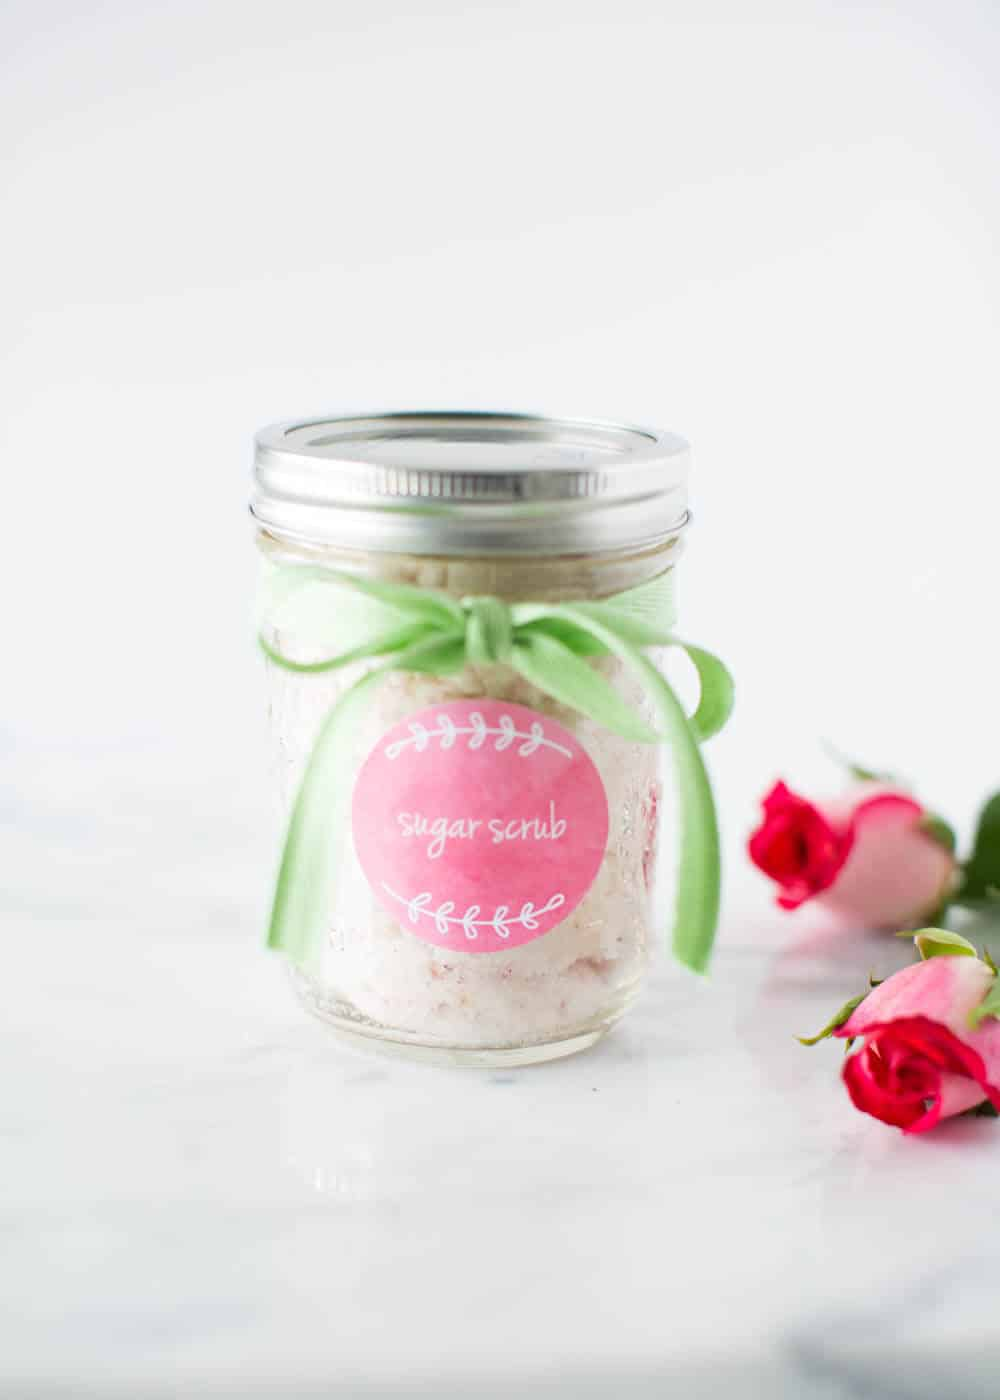 Vanilla sugar scrub in a mason jar with green ribbon